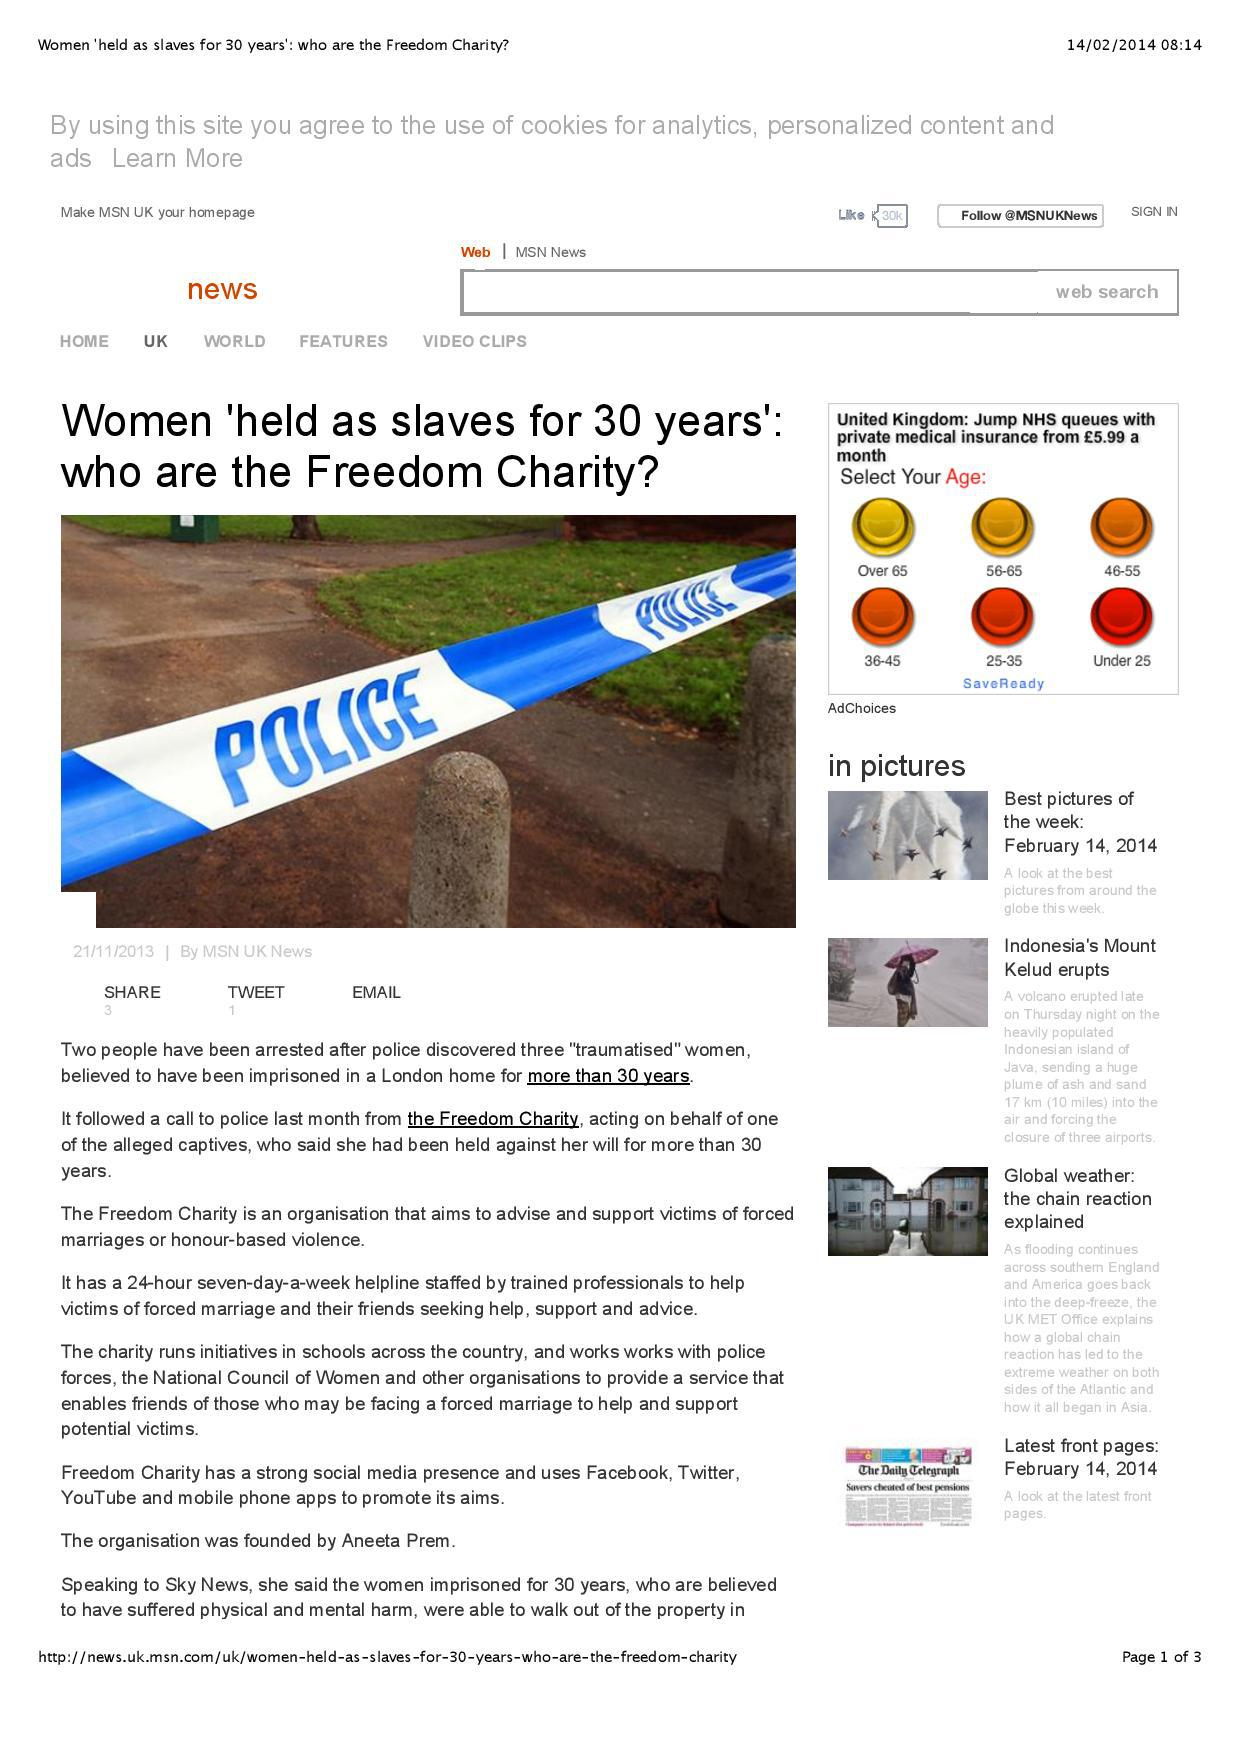 msn-women-held-as-slaves-for-30-years-who-are-the-freedom-charity-page-001